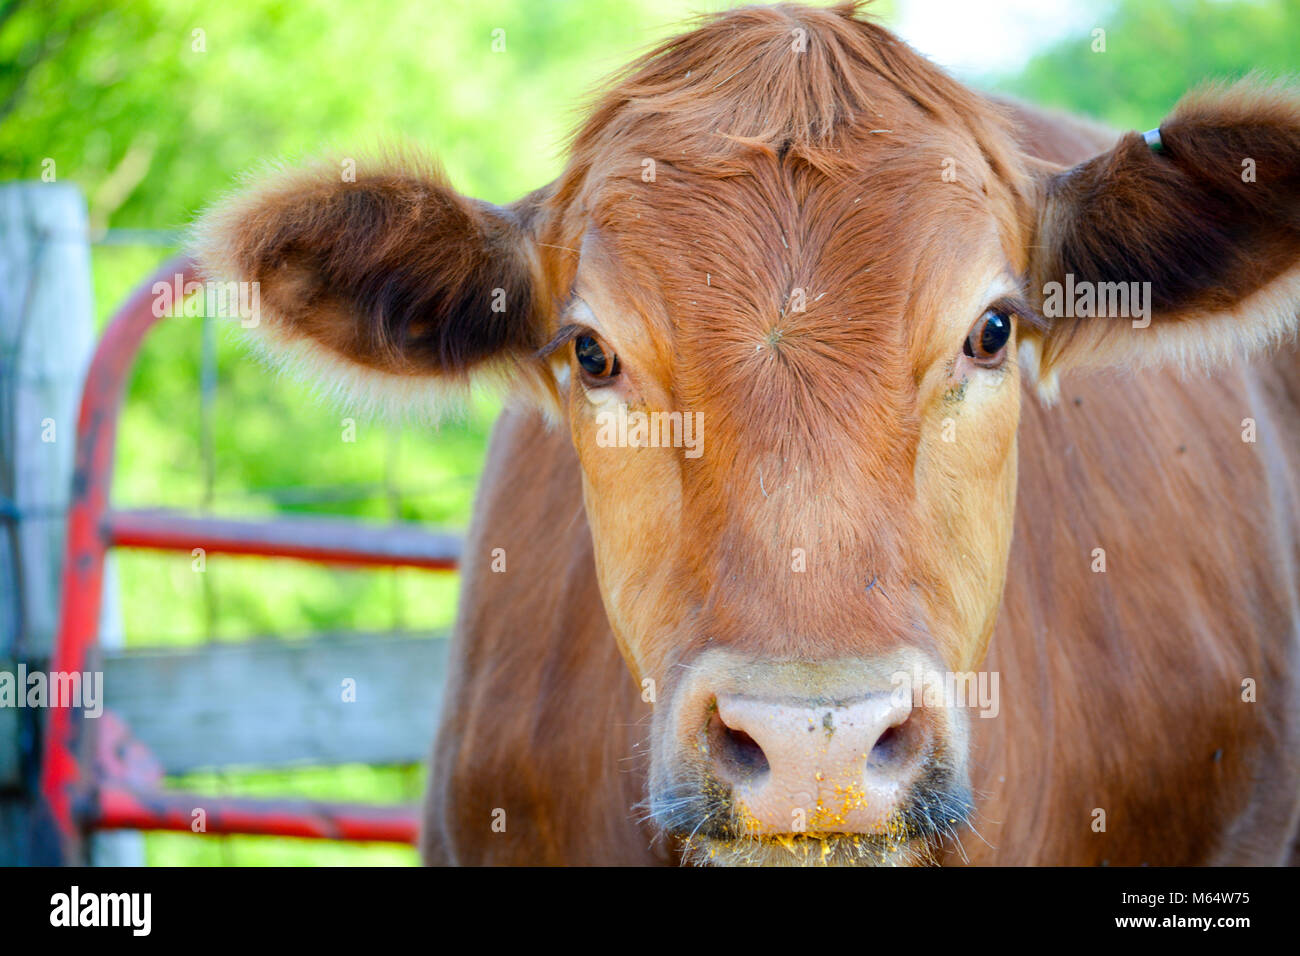 Face of a Red Heifer on a Farm in Rural Iowa - Stock Image